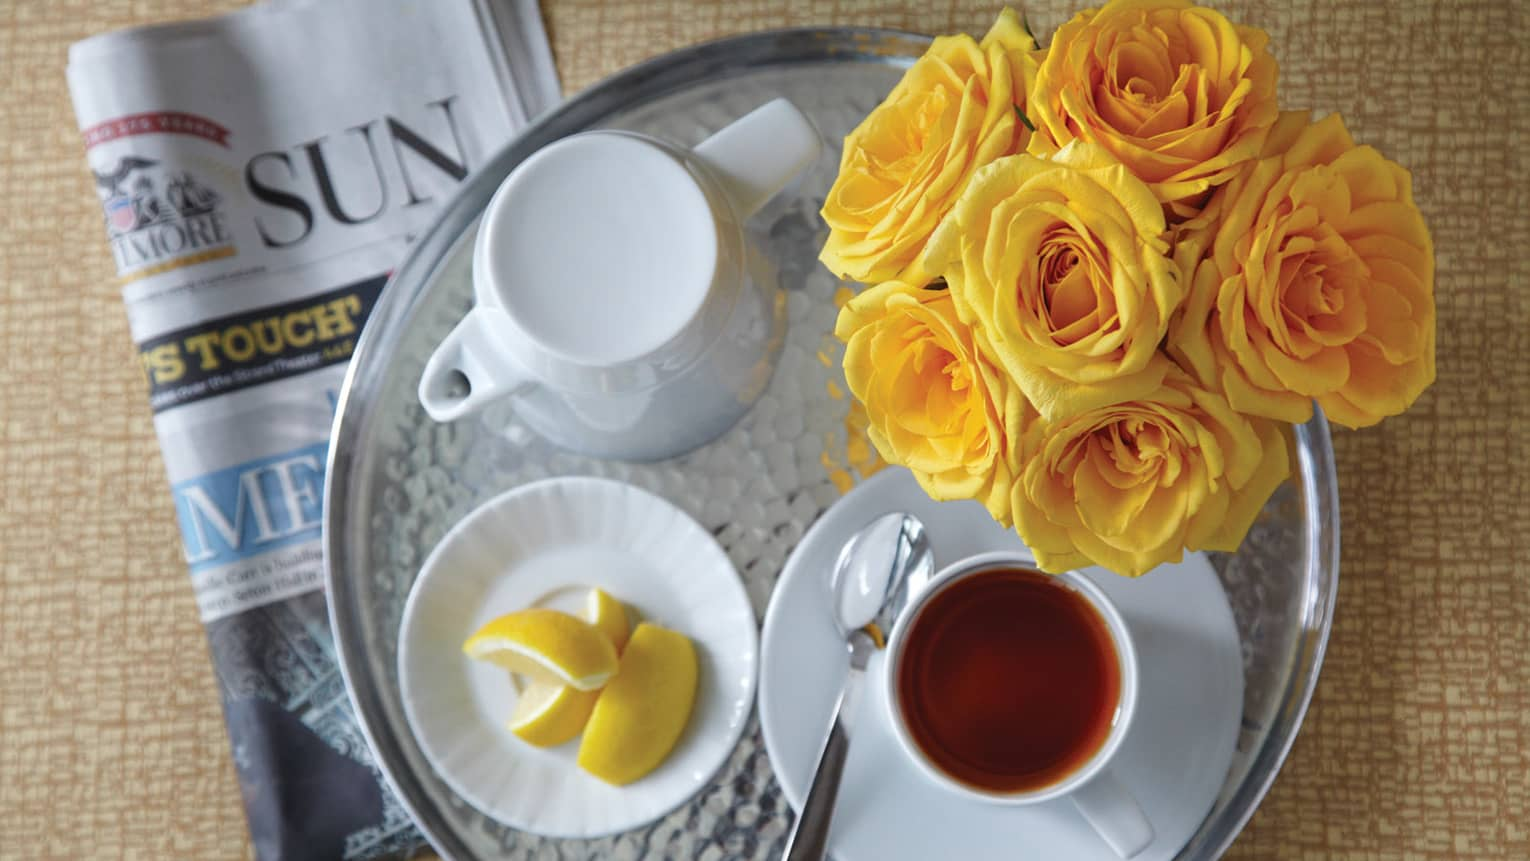 Aerial view of round silver tray with white teapot, tea in mug, yellow roses, newspapers